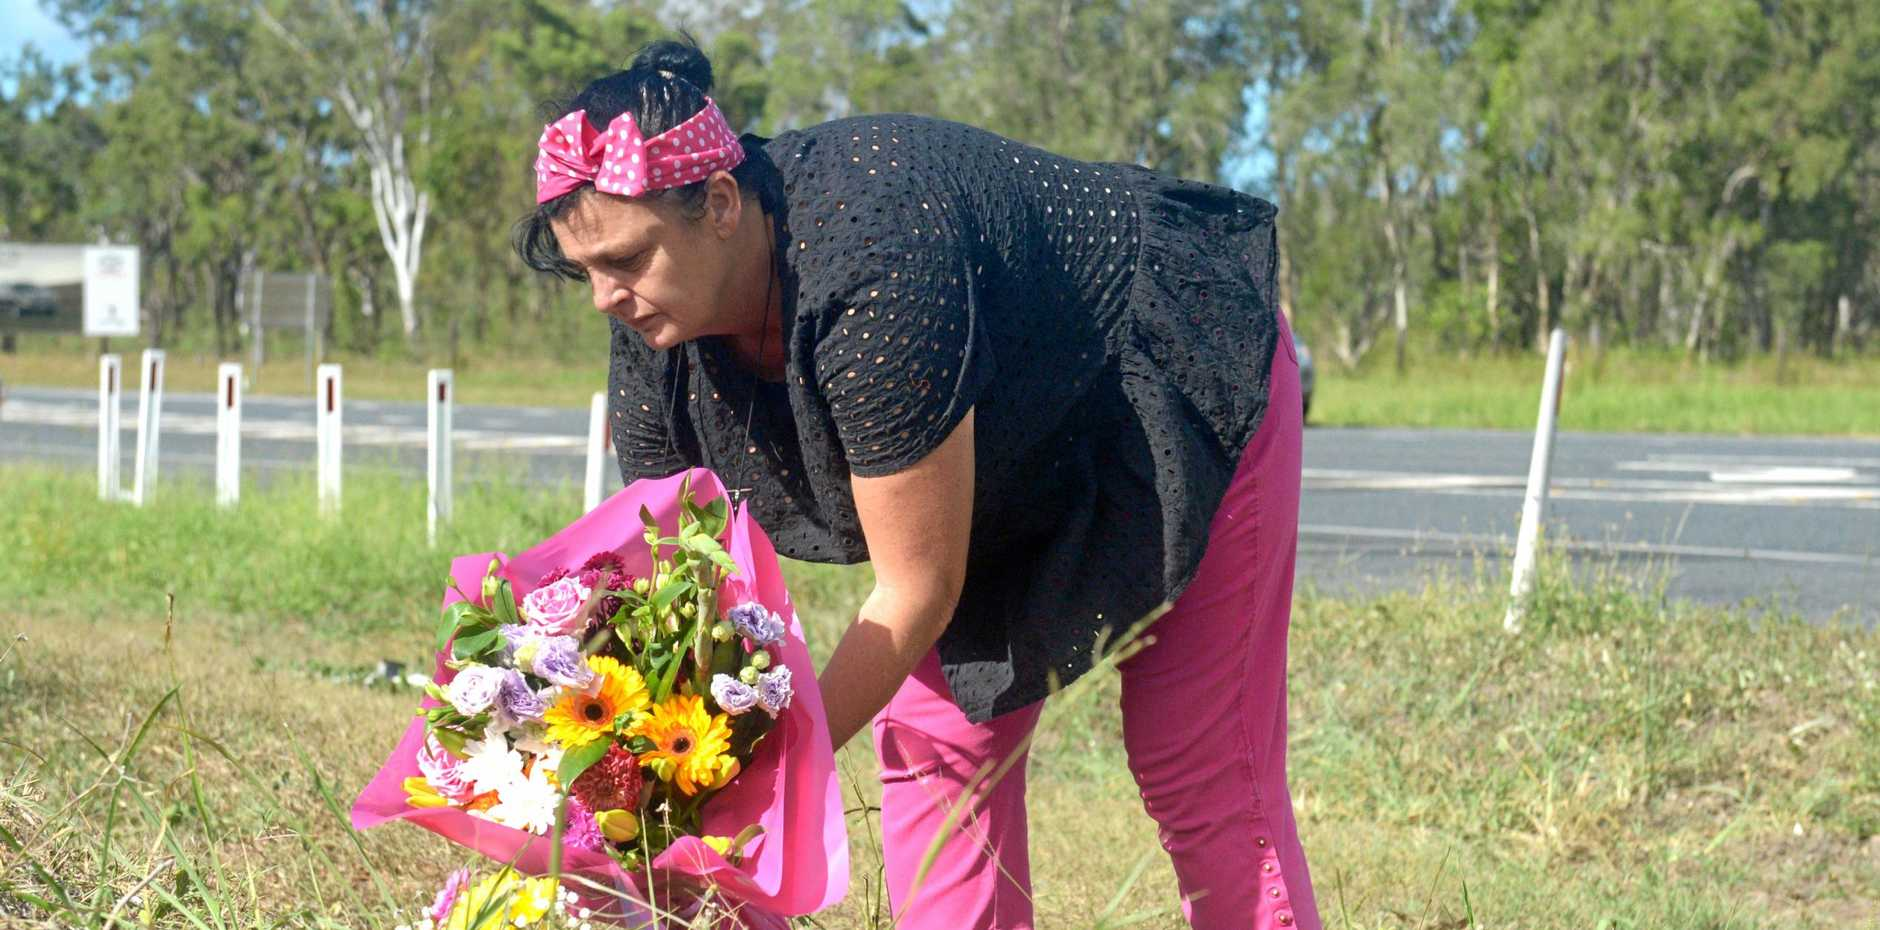 Local resident Ped Payne lays flowers on the intersection where Zara Pakleppa lost her life in a two car collision